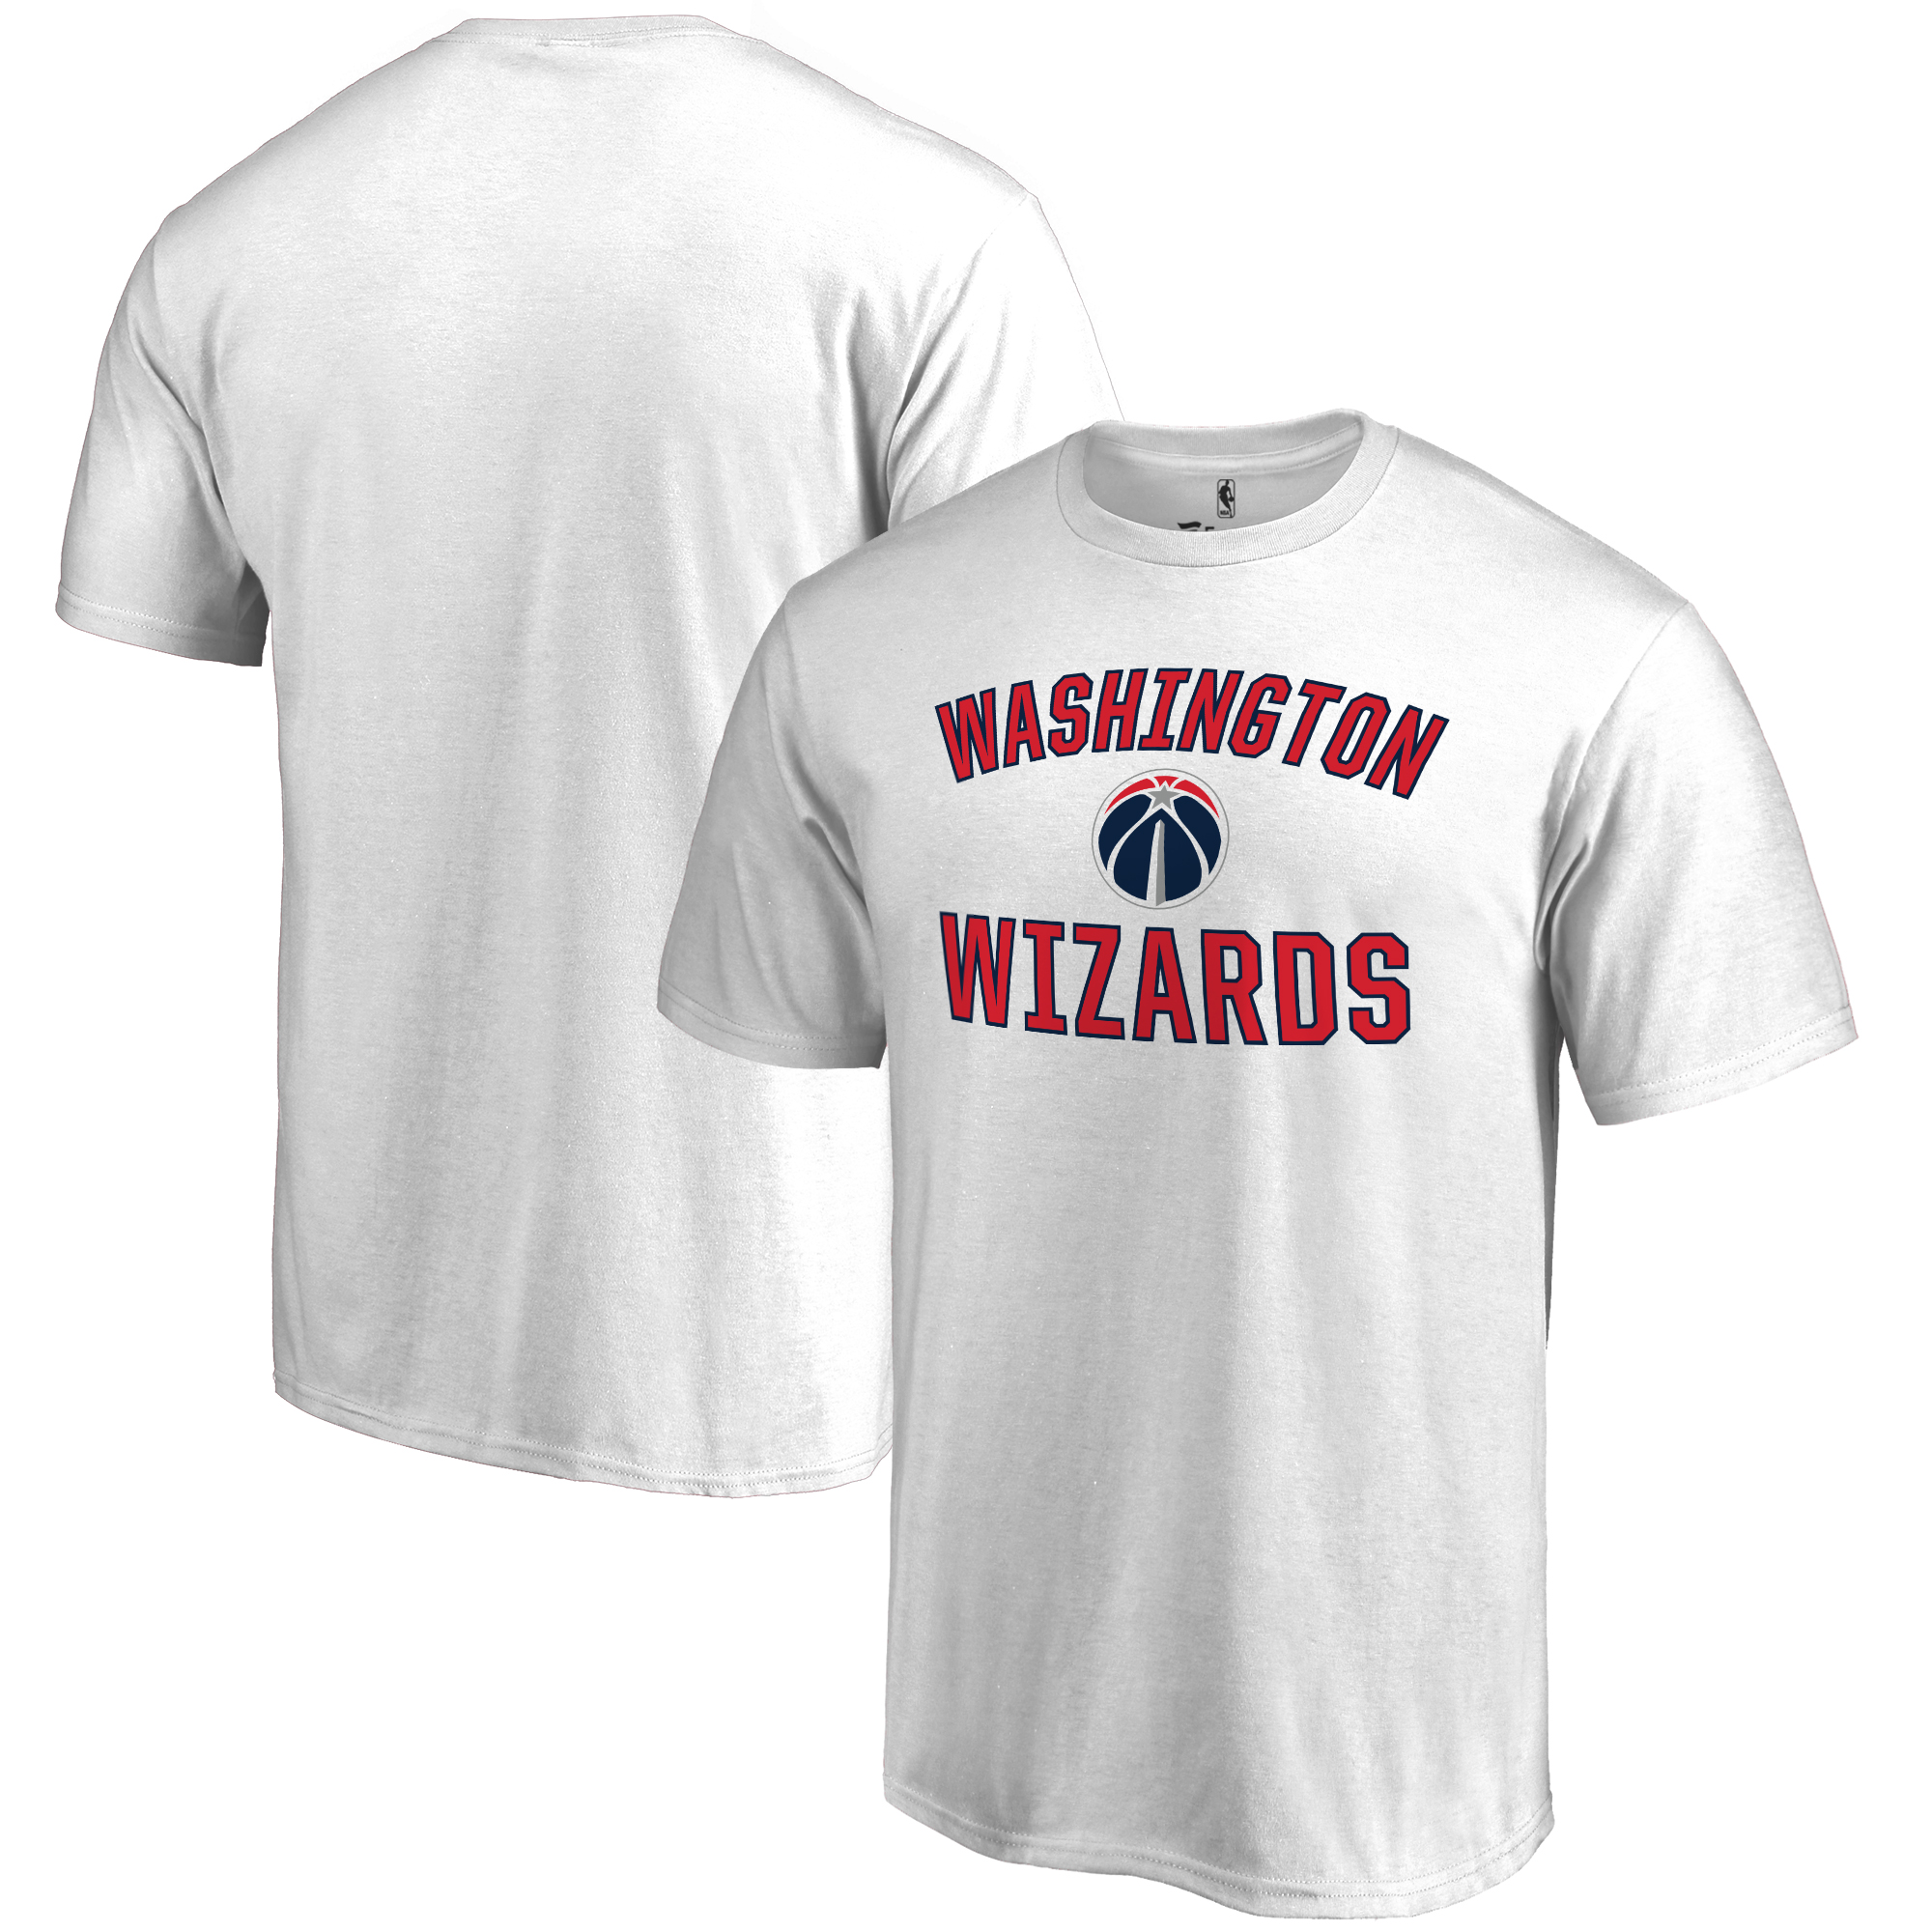 Washington Wizards Big & Tall Victory Arch T-Shirt - White